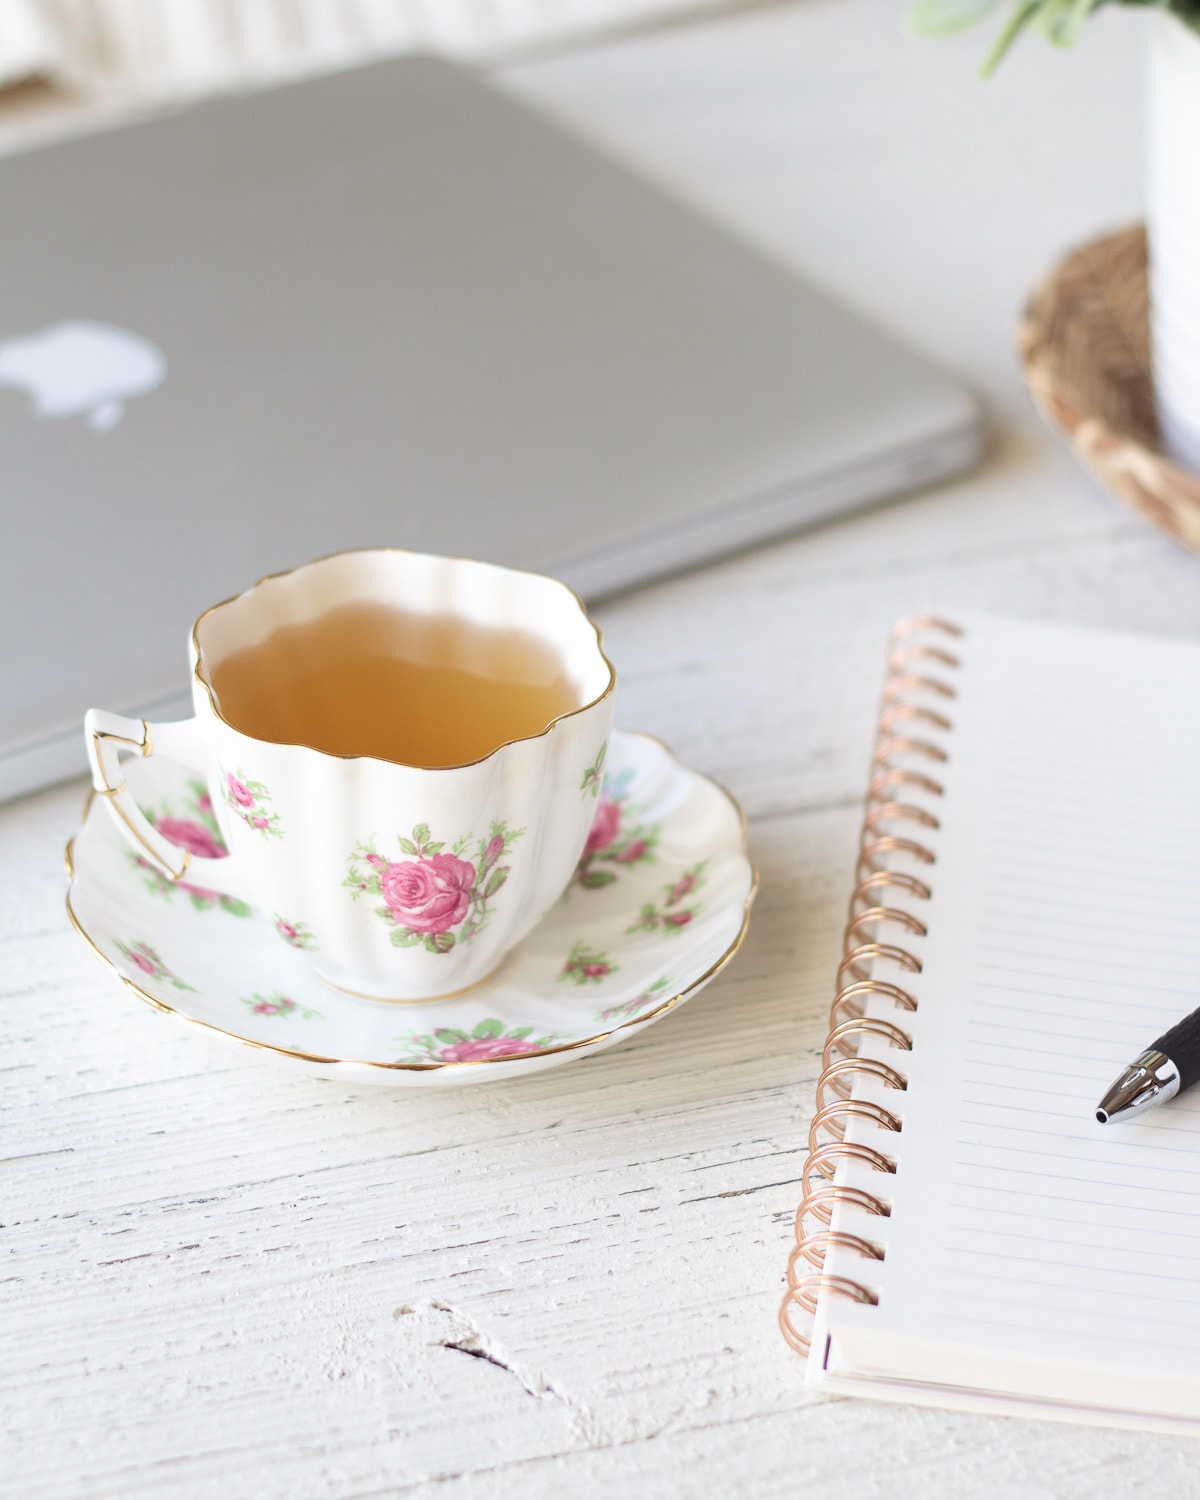 A teacup and notebook on a wooden surface.